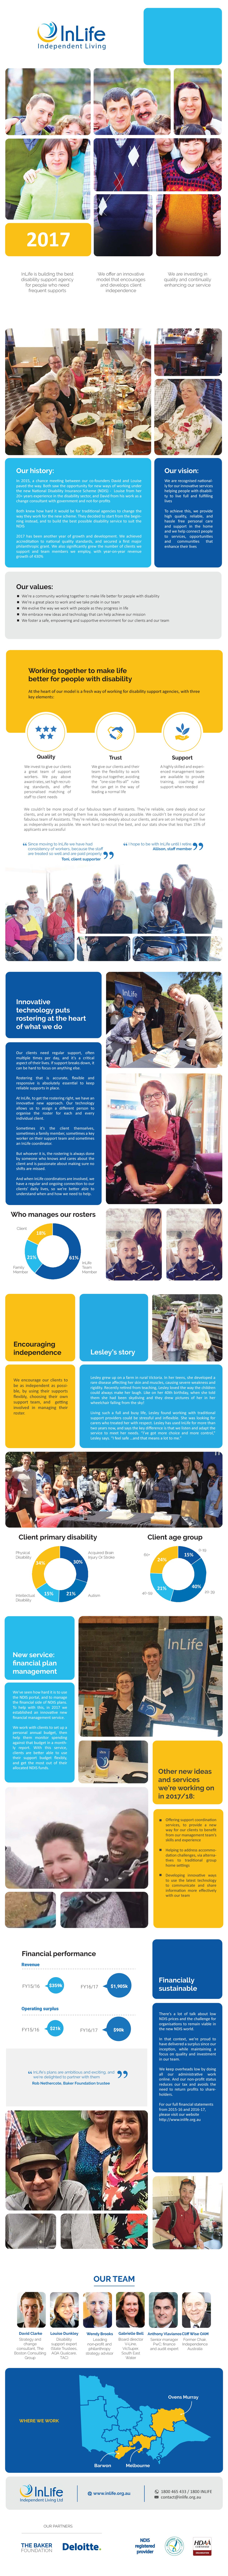 Design a marketing brochure for a new disability service